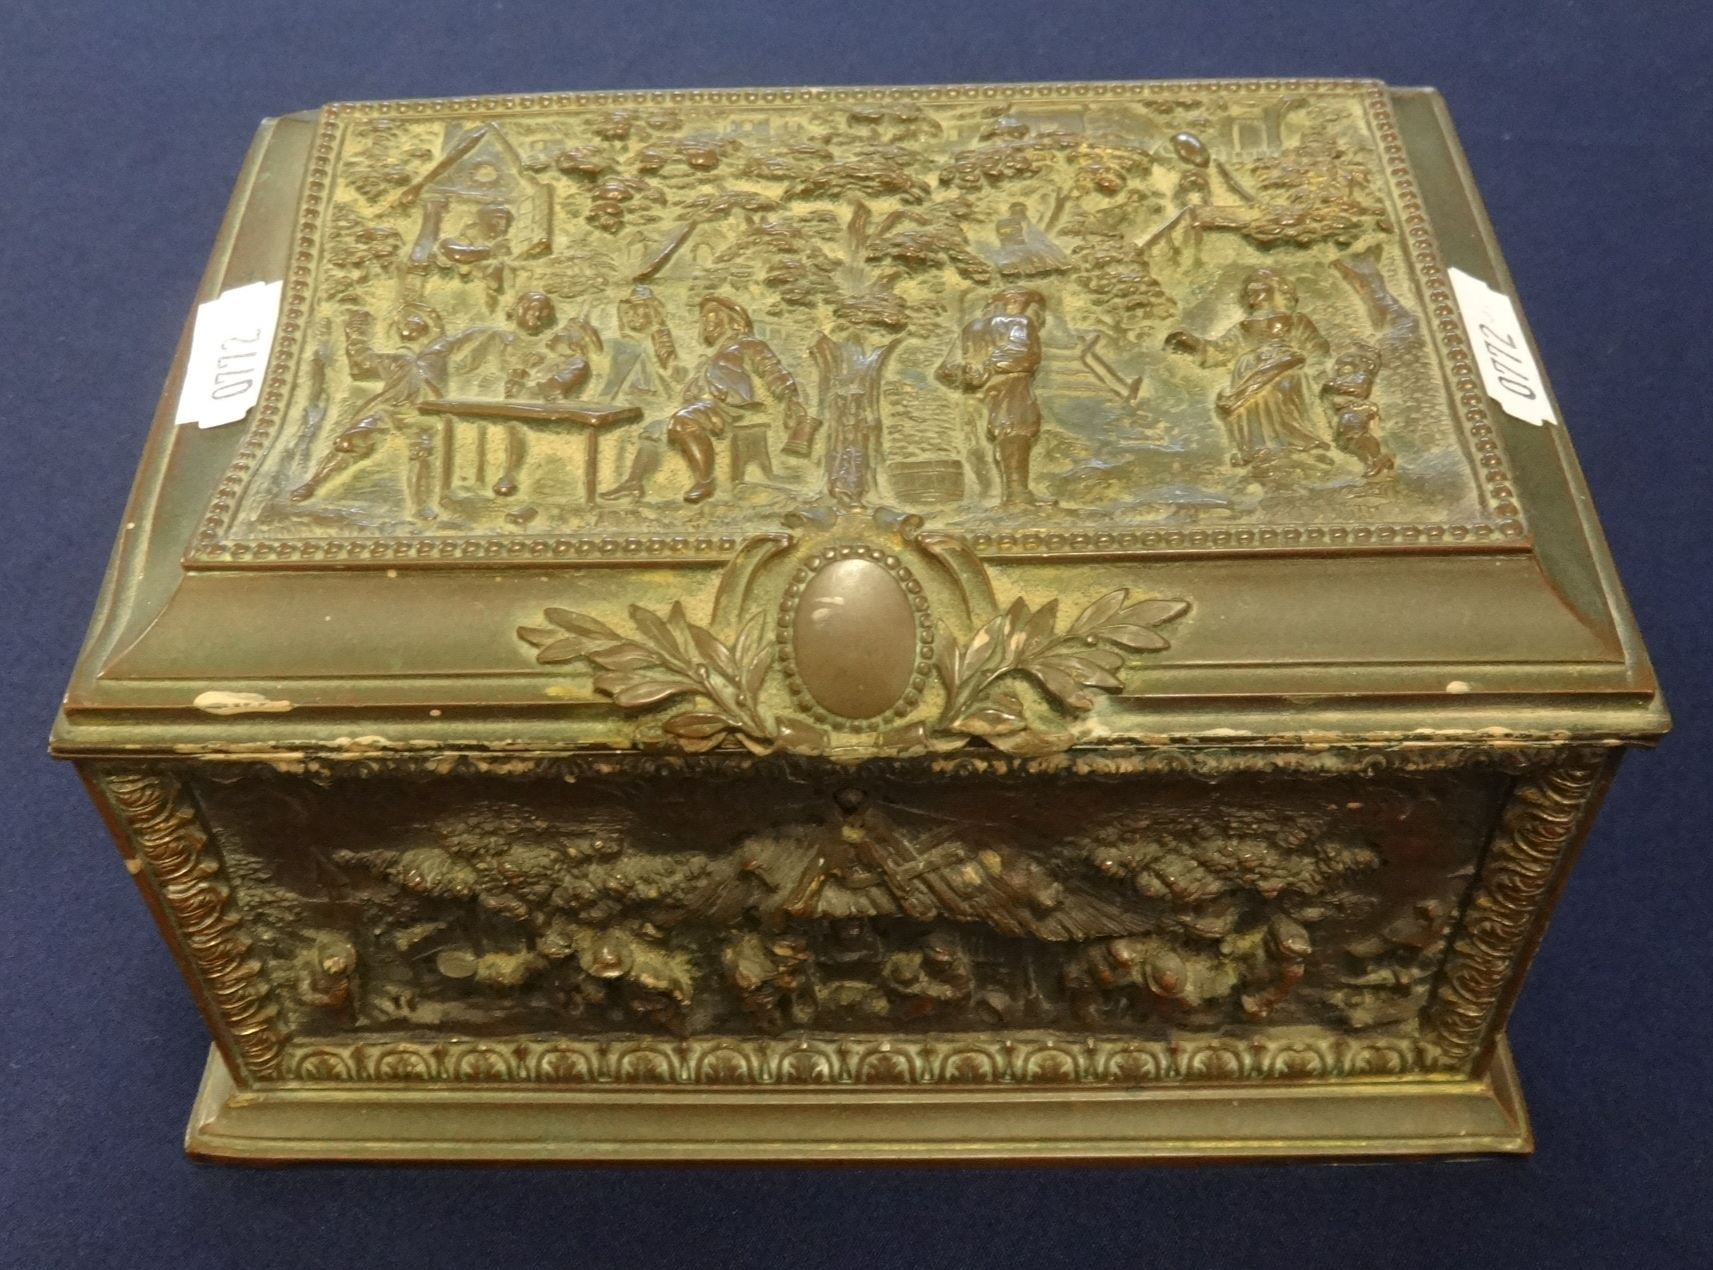 Lot 023 - 19th century metal jewellery box, richly decorated relief, by AB Paris and retailed by Asser and